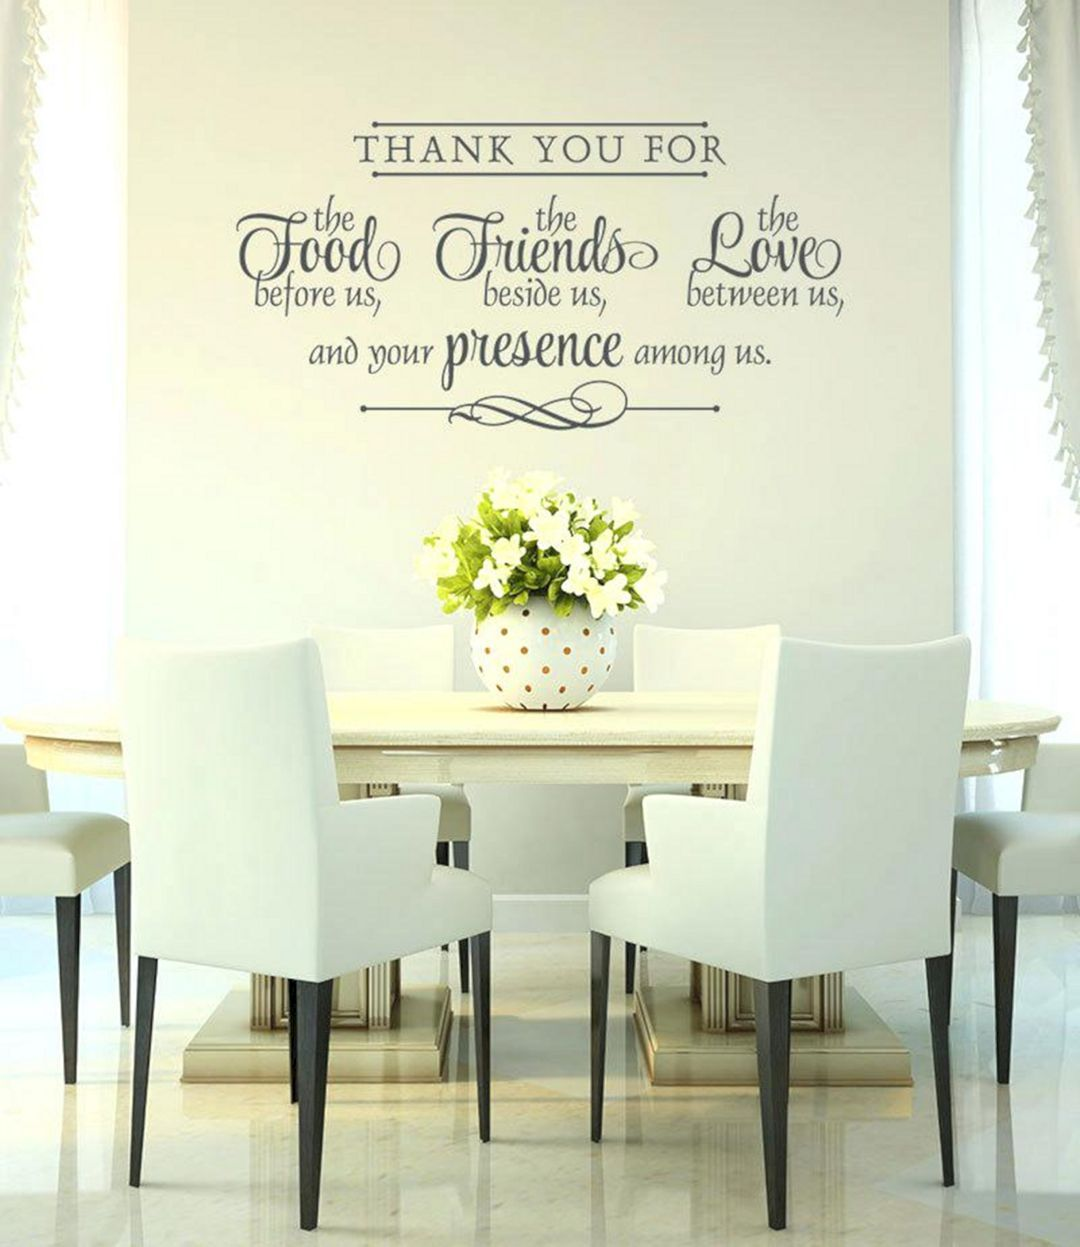 55 Dining Room Wall Decor Ideas: 35 Most Creative Dining Room Wall Quotes Ideas For Amazing